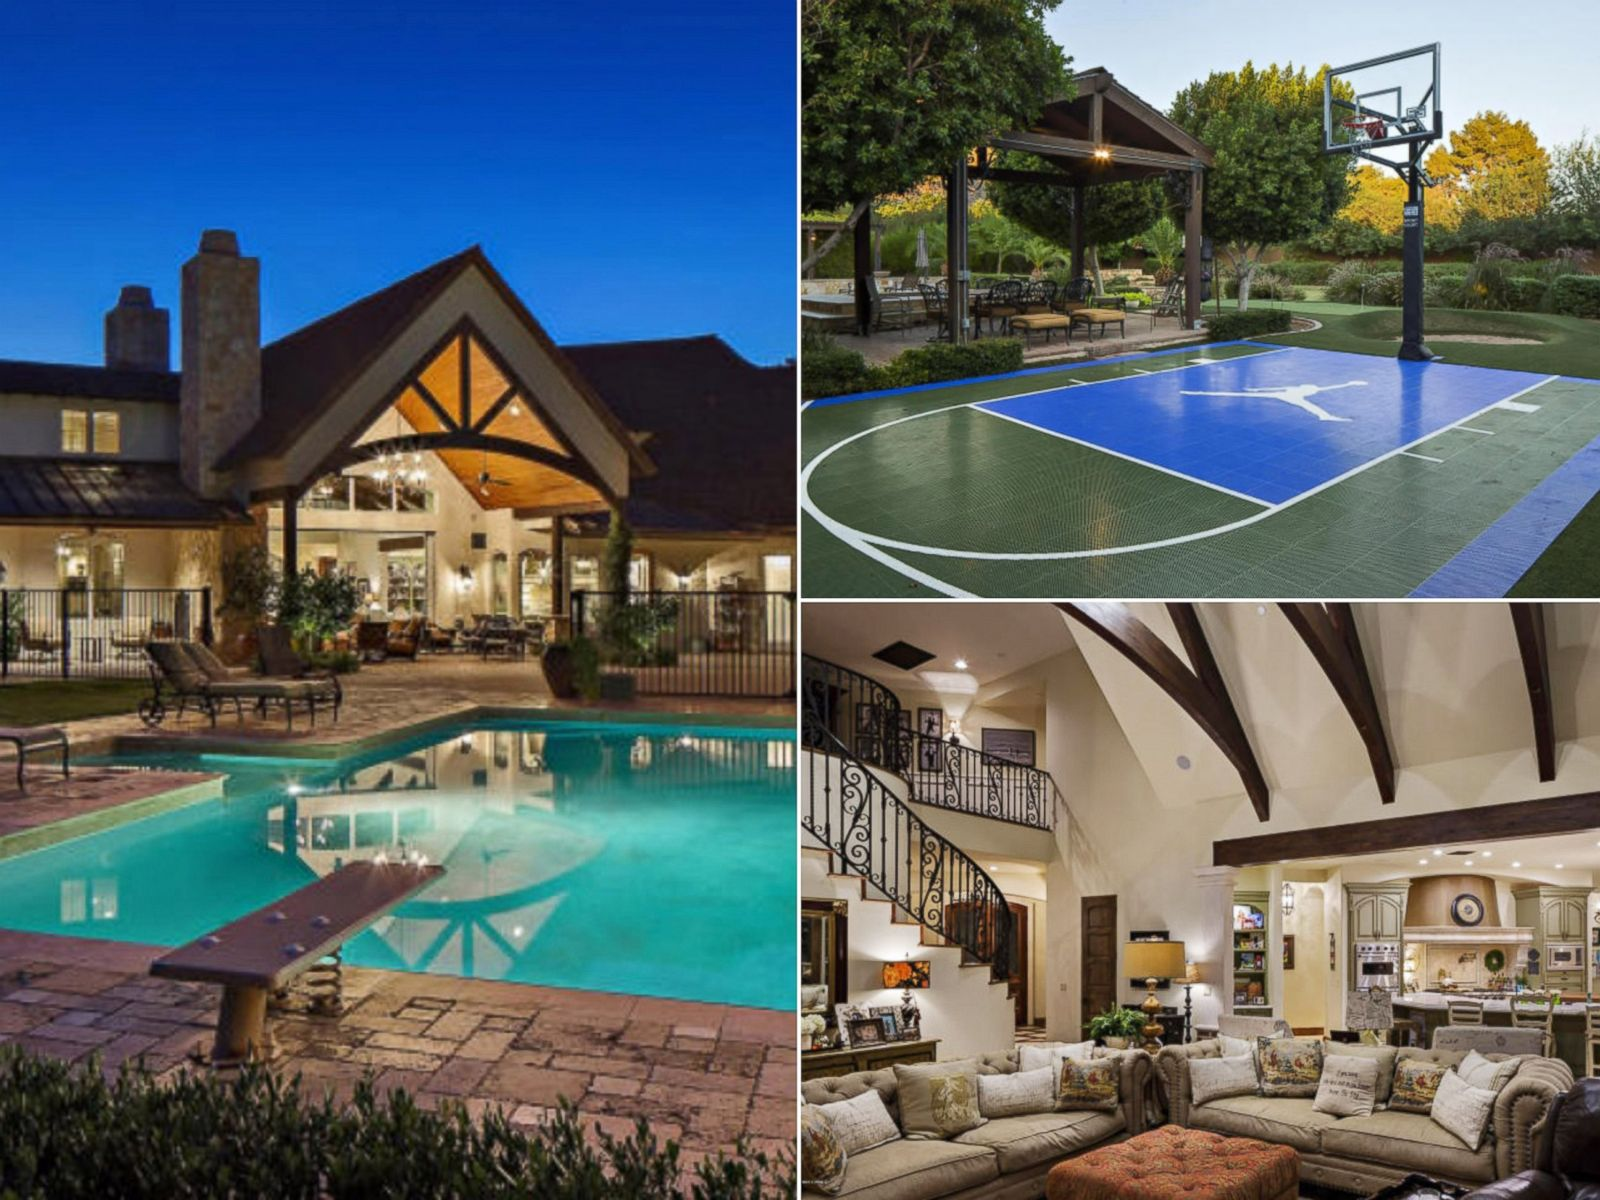 March Madness Homes With Basketball Courts For Sale s ABC News